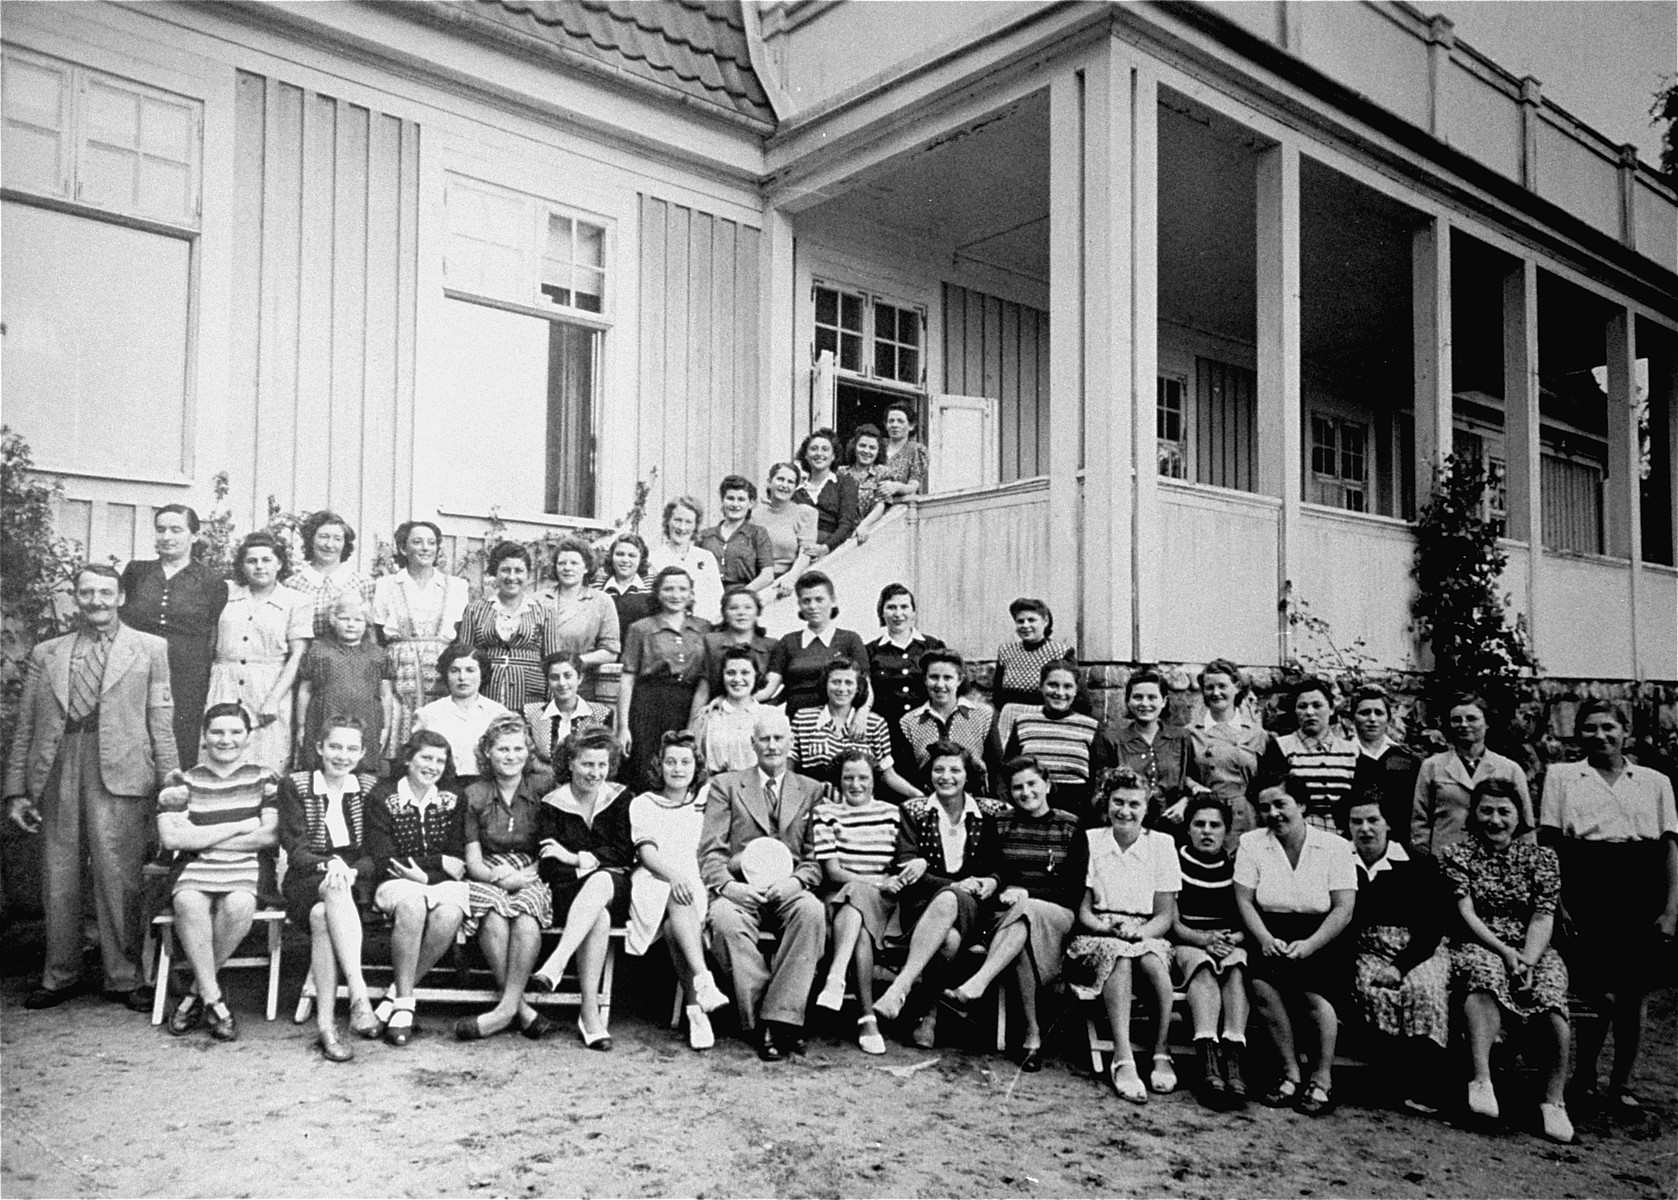 Group portrait of Jewish female survivors of Bergen-Belsen, who were evacuated to Sweden at the end of the war, and are now convalescing at hospital in Stensjoen Nomnekul.  Pictured in the back row, at the base of the stairs and seventh from the right, is the donor's wife, Helen Kaufman.  Originally from Beregasz, in Hungarian-controlled Slovakia, Kaufman was deported to Auschwitz in May 1944.  She was later transferred to Bergen-Belsen, where she was liberated.  Also among those pictured are Barbara (Borbala) Grunstein (third from the left in the front row) and her Ilona Gerendas (second from the left in the first row).